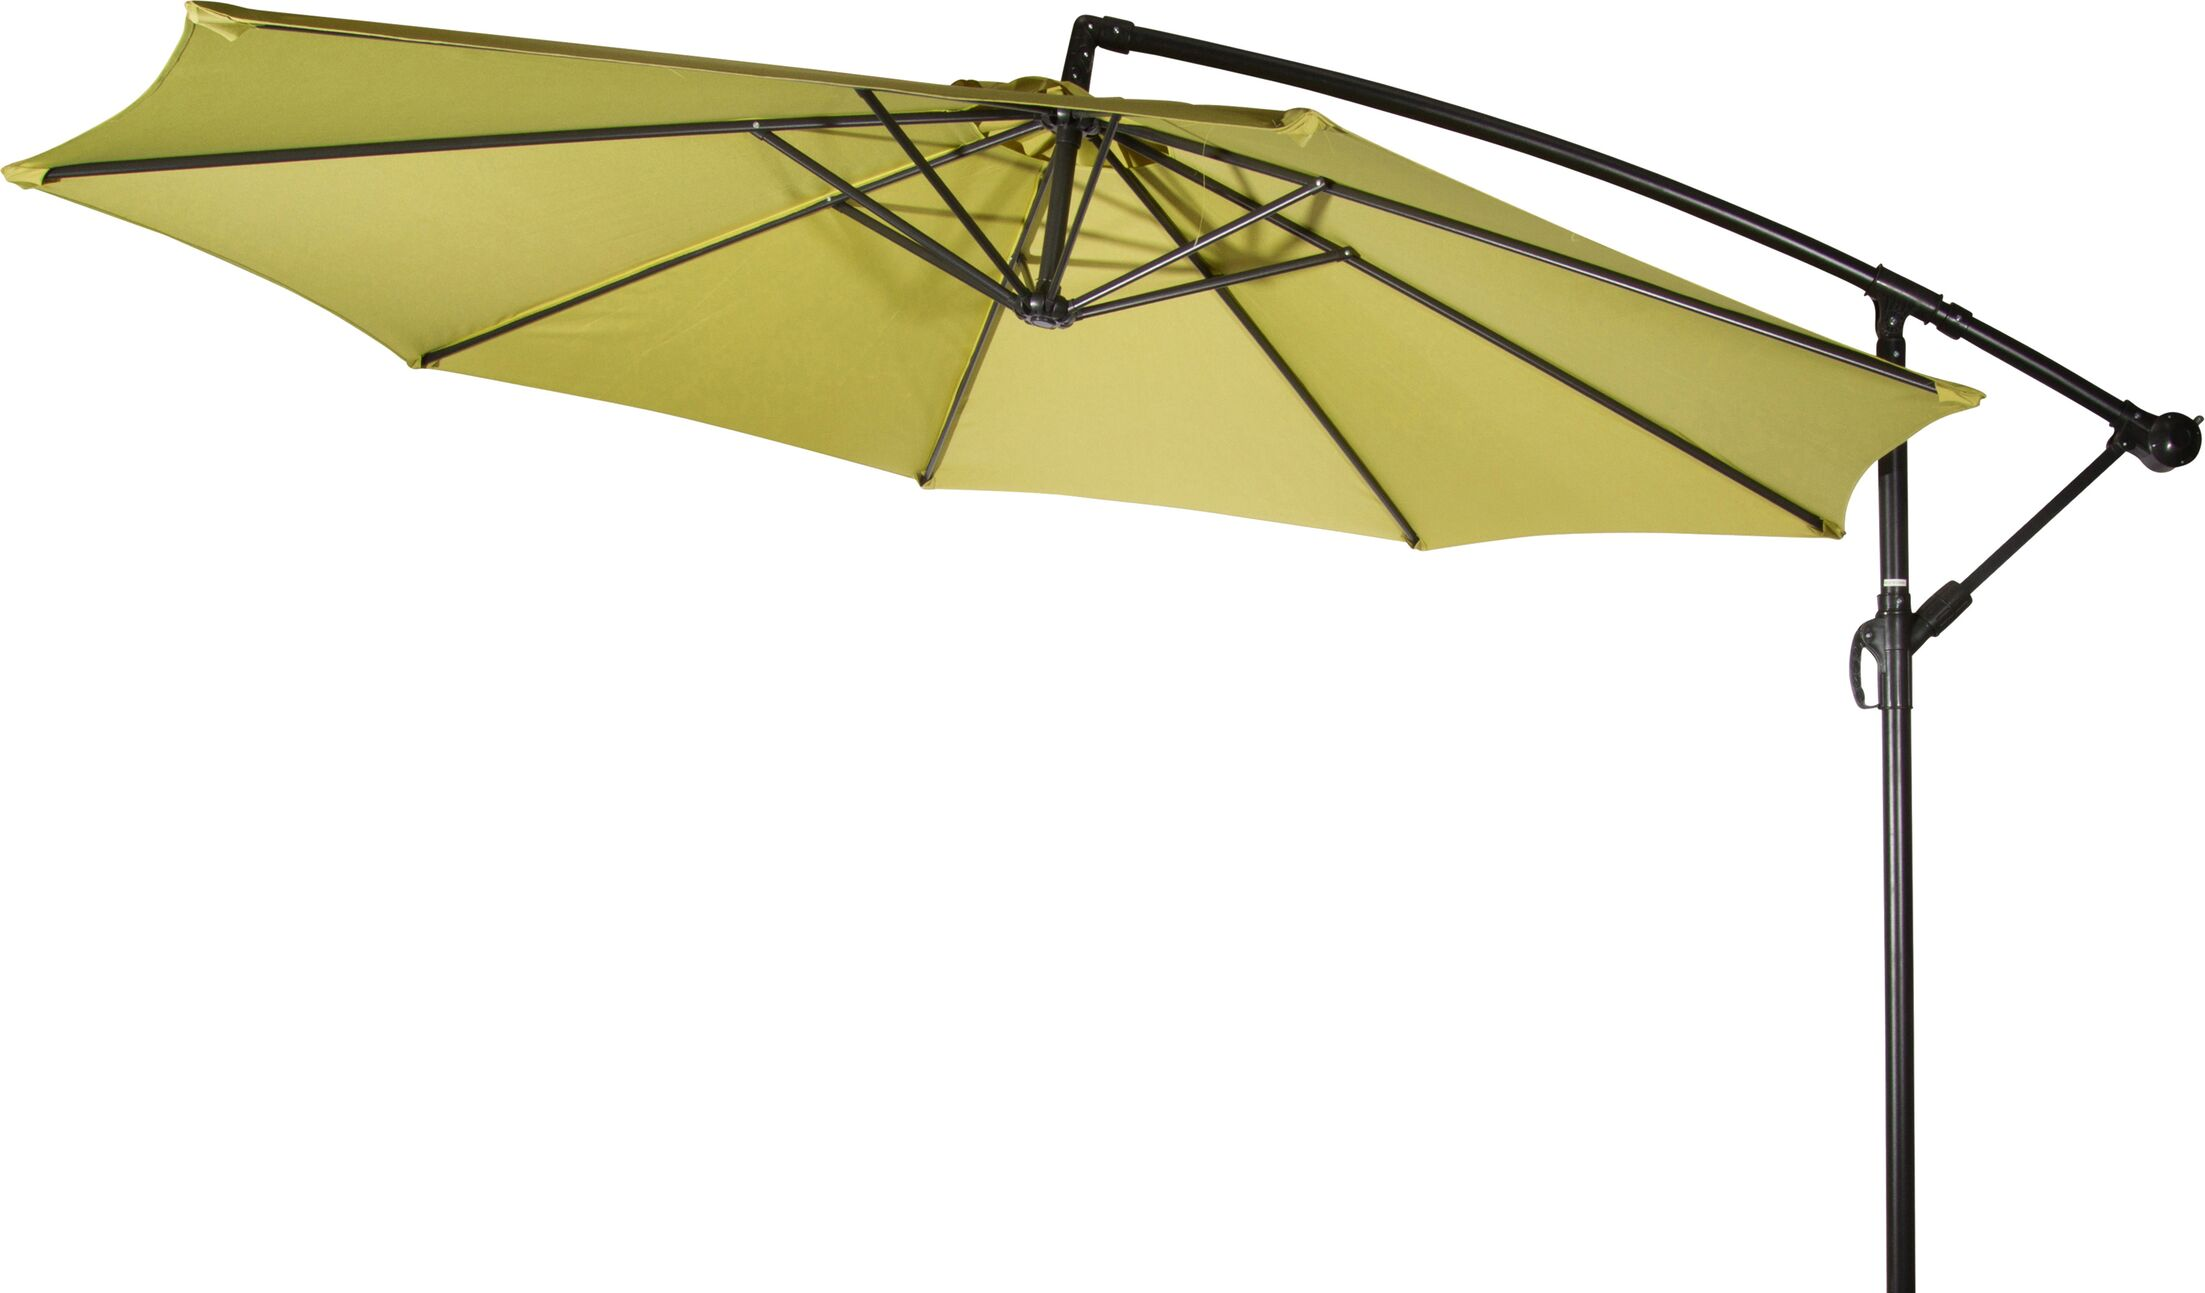 Stockham 10' Cantilever Umbrella Canopy Color: Light Green